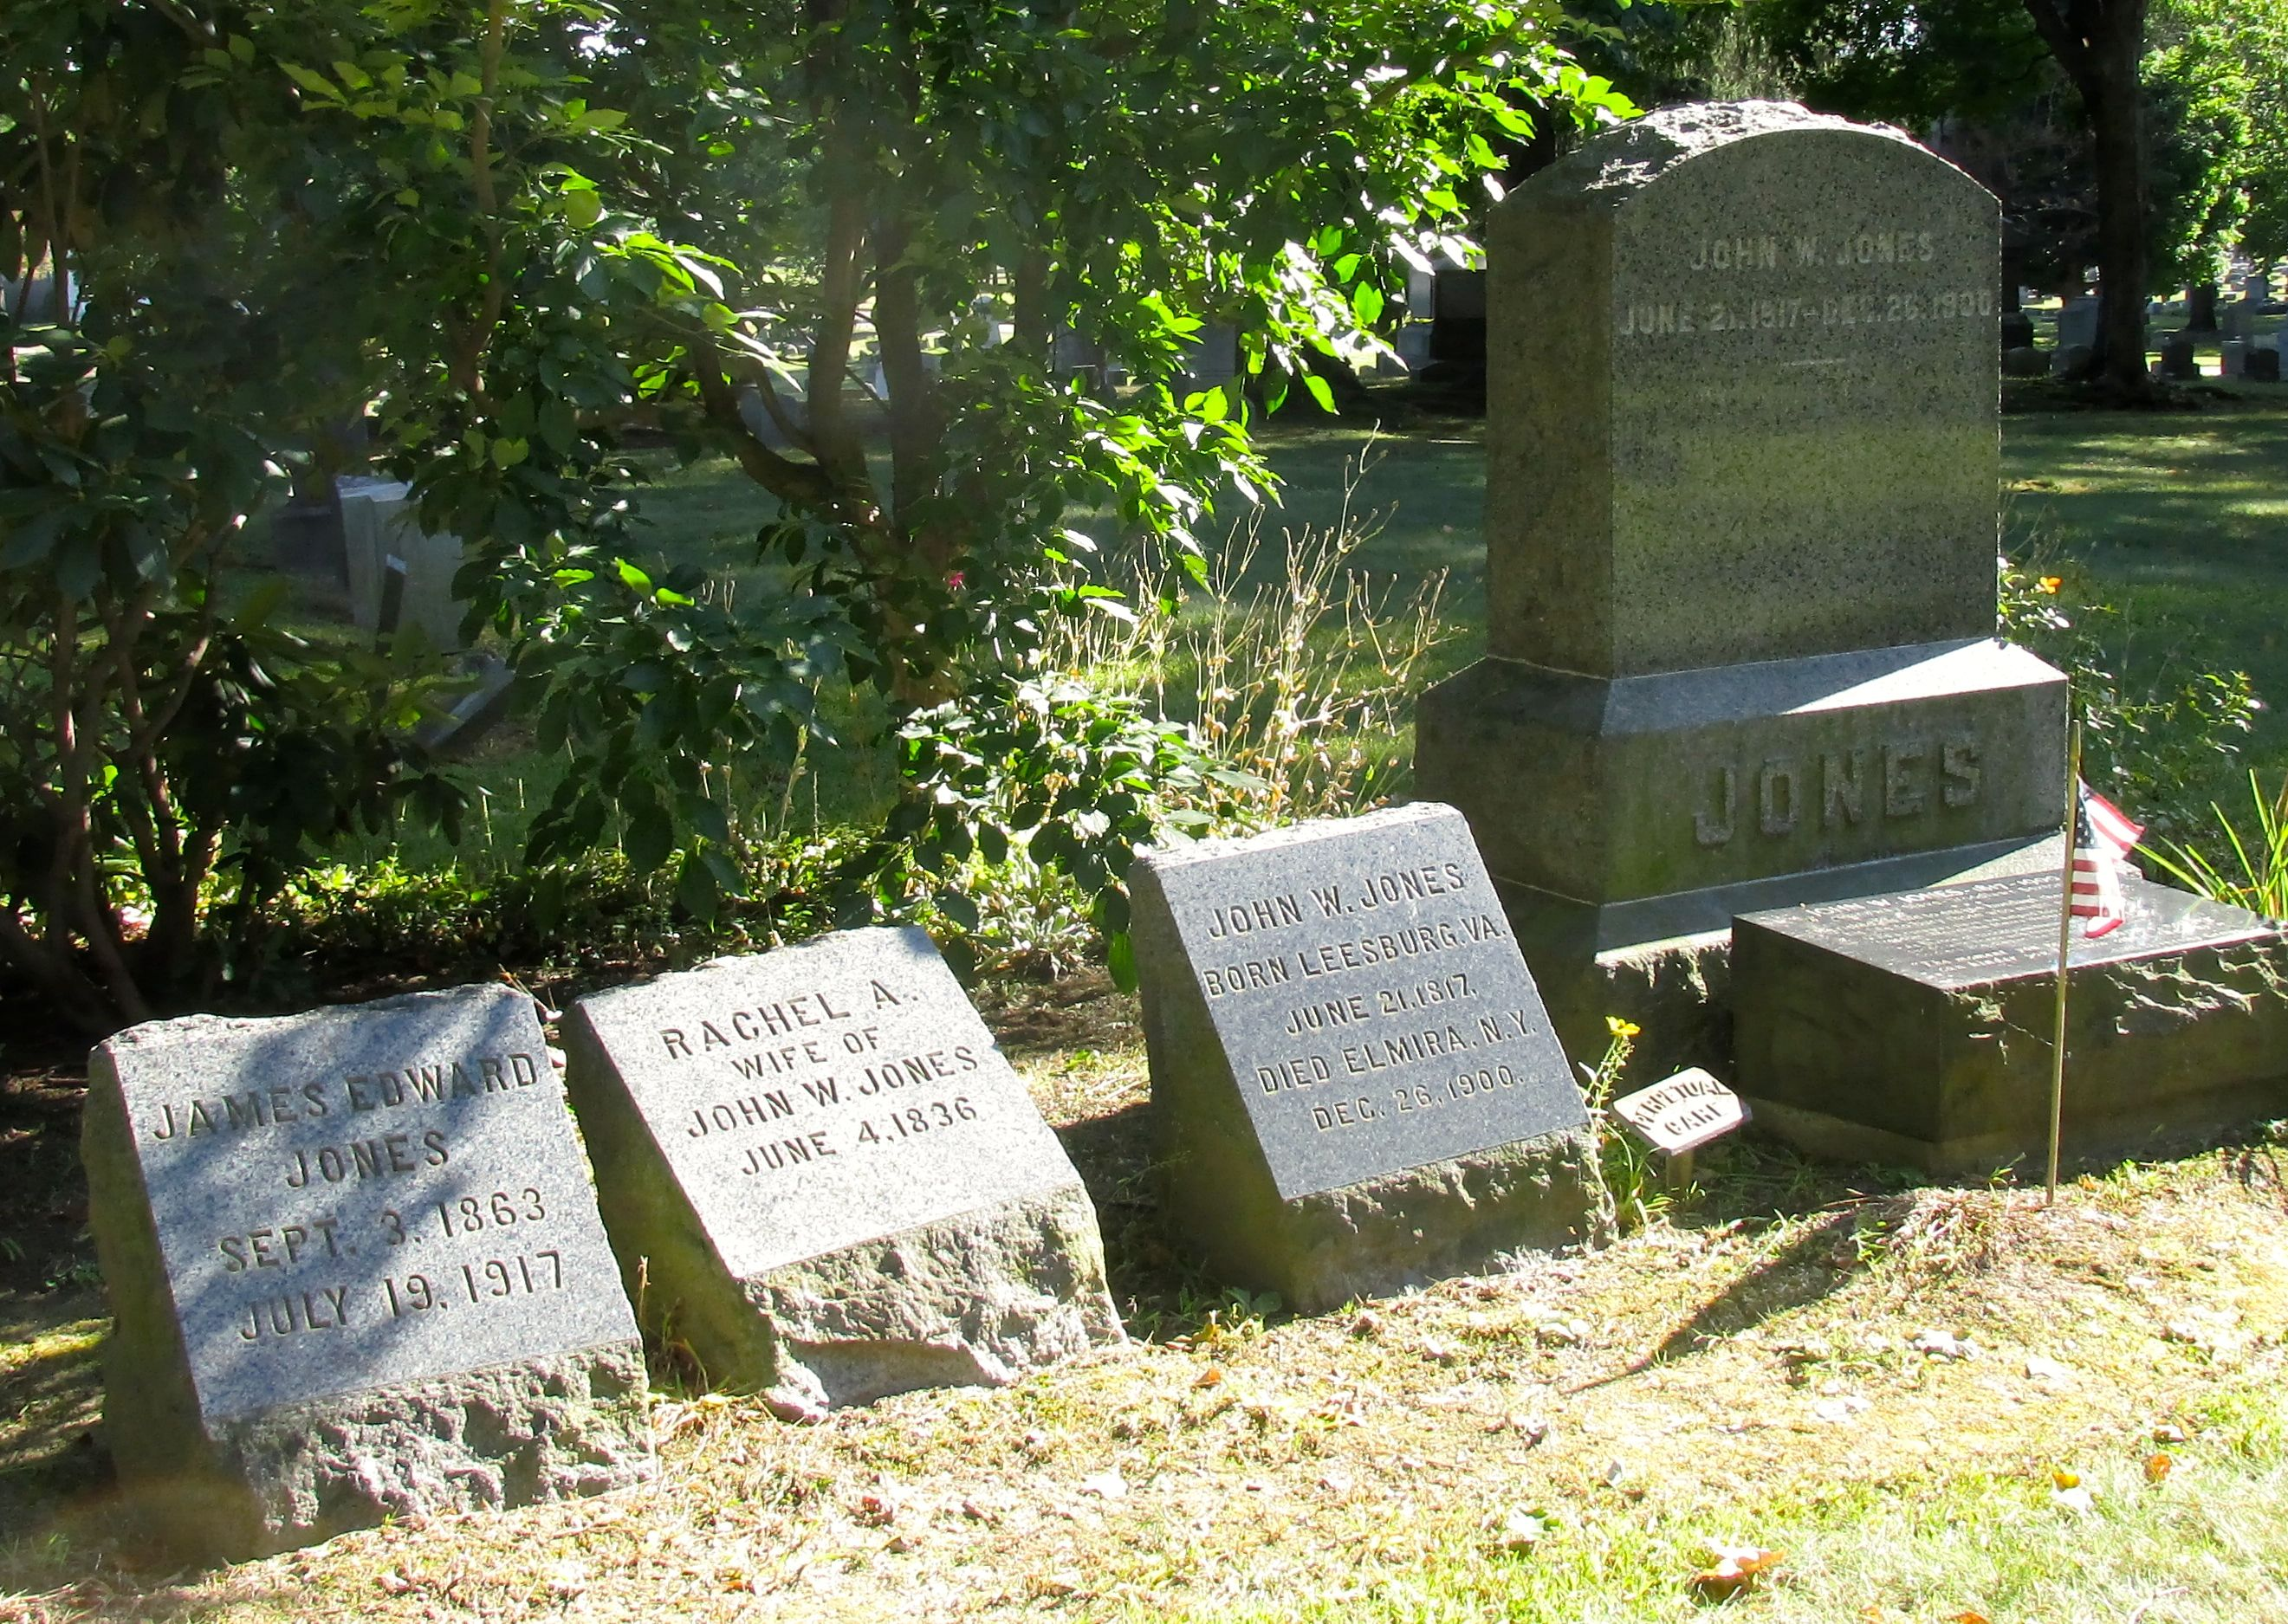 John Jones' family plot